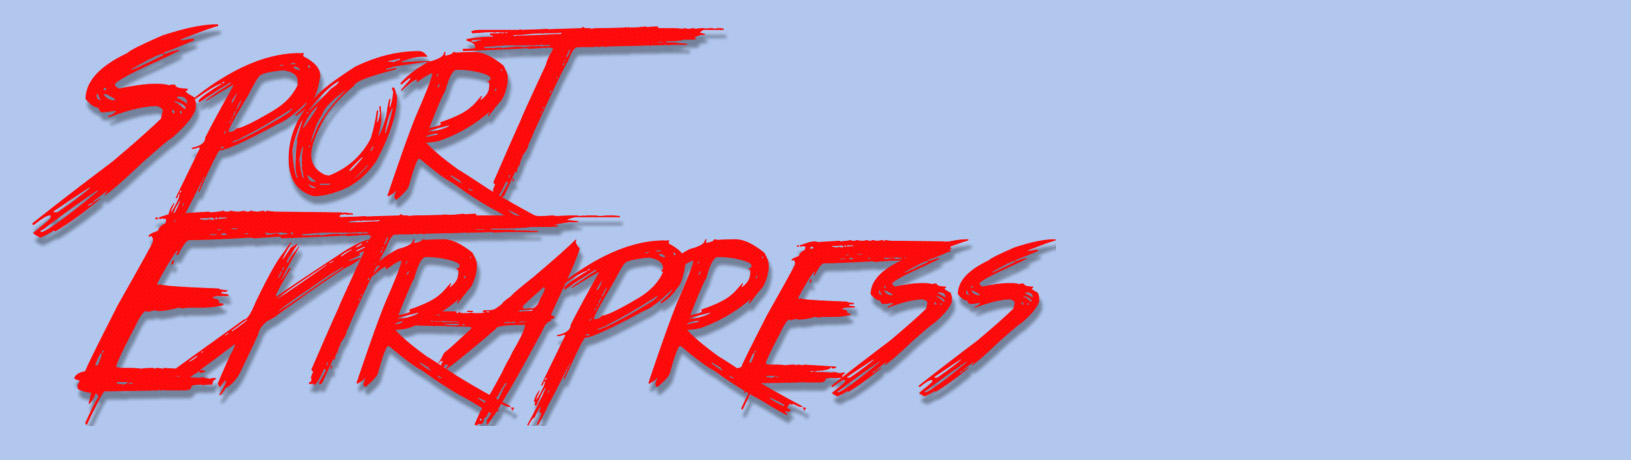 logosportestrapress